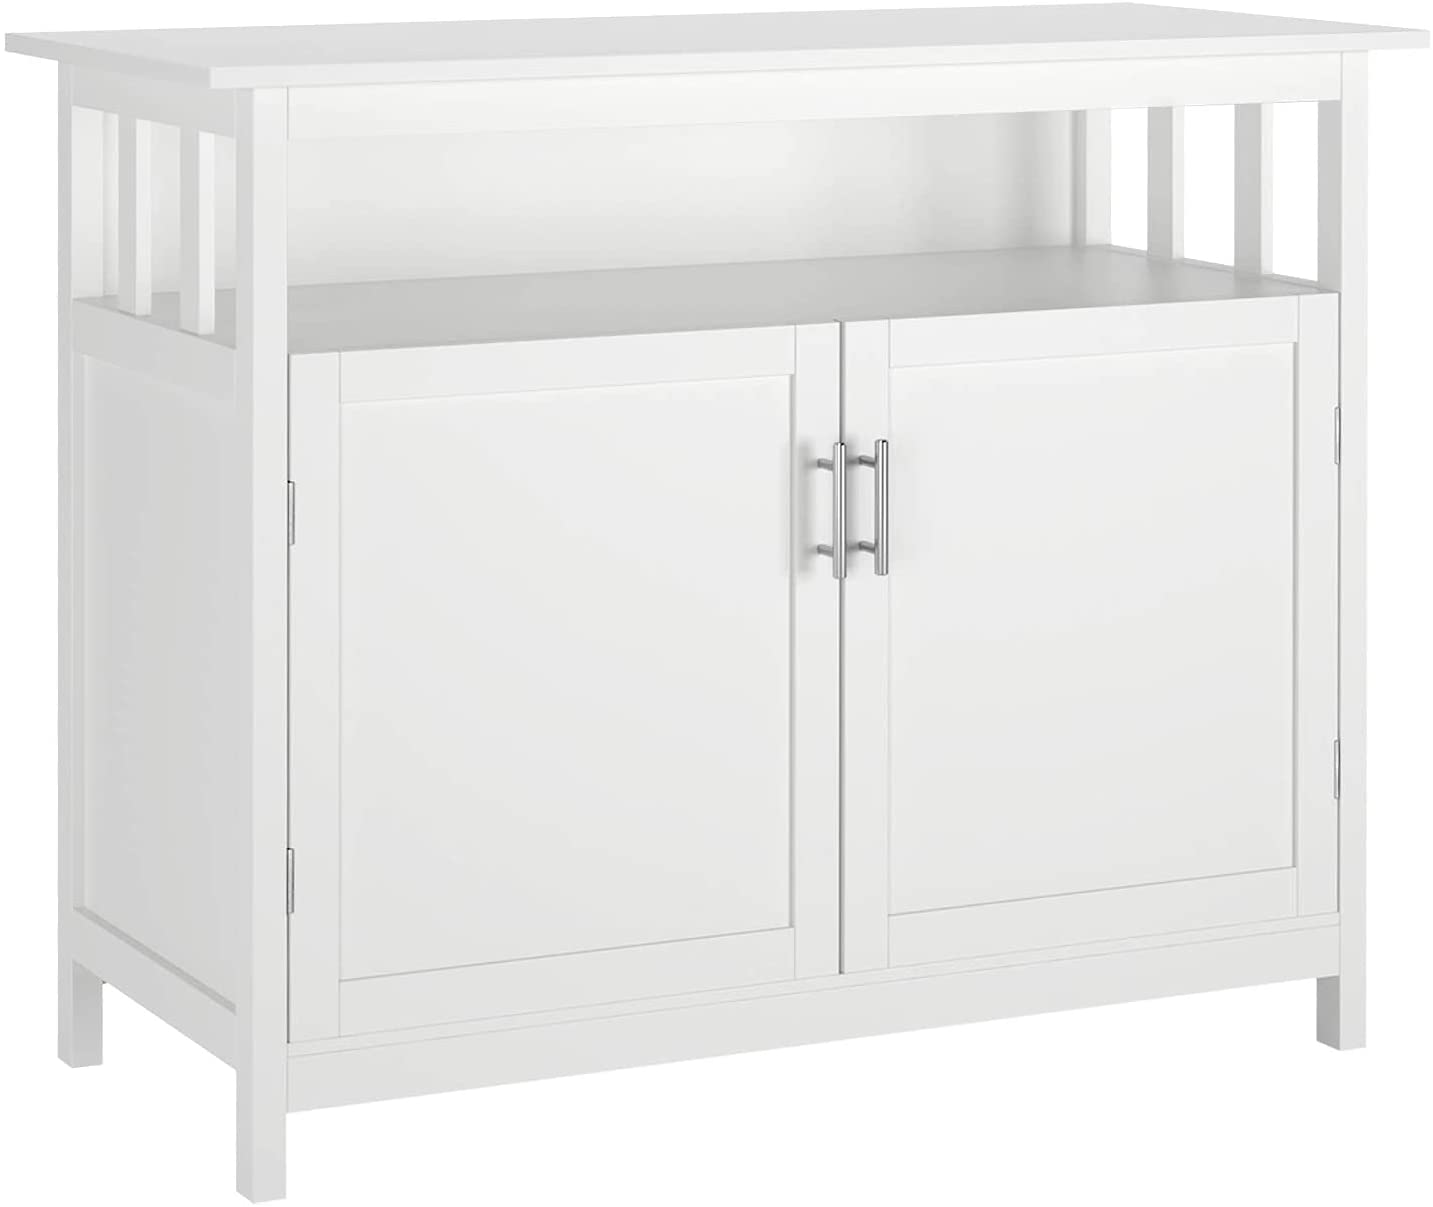 Kitchen Sideboard Cabinet with Max 68% OFF Ultra-Cheap Deals Display Cons Server Buffet Shelf